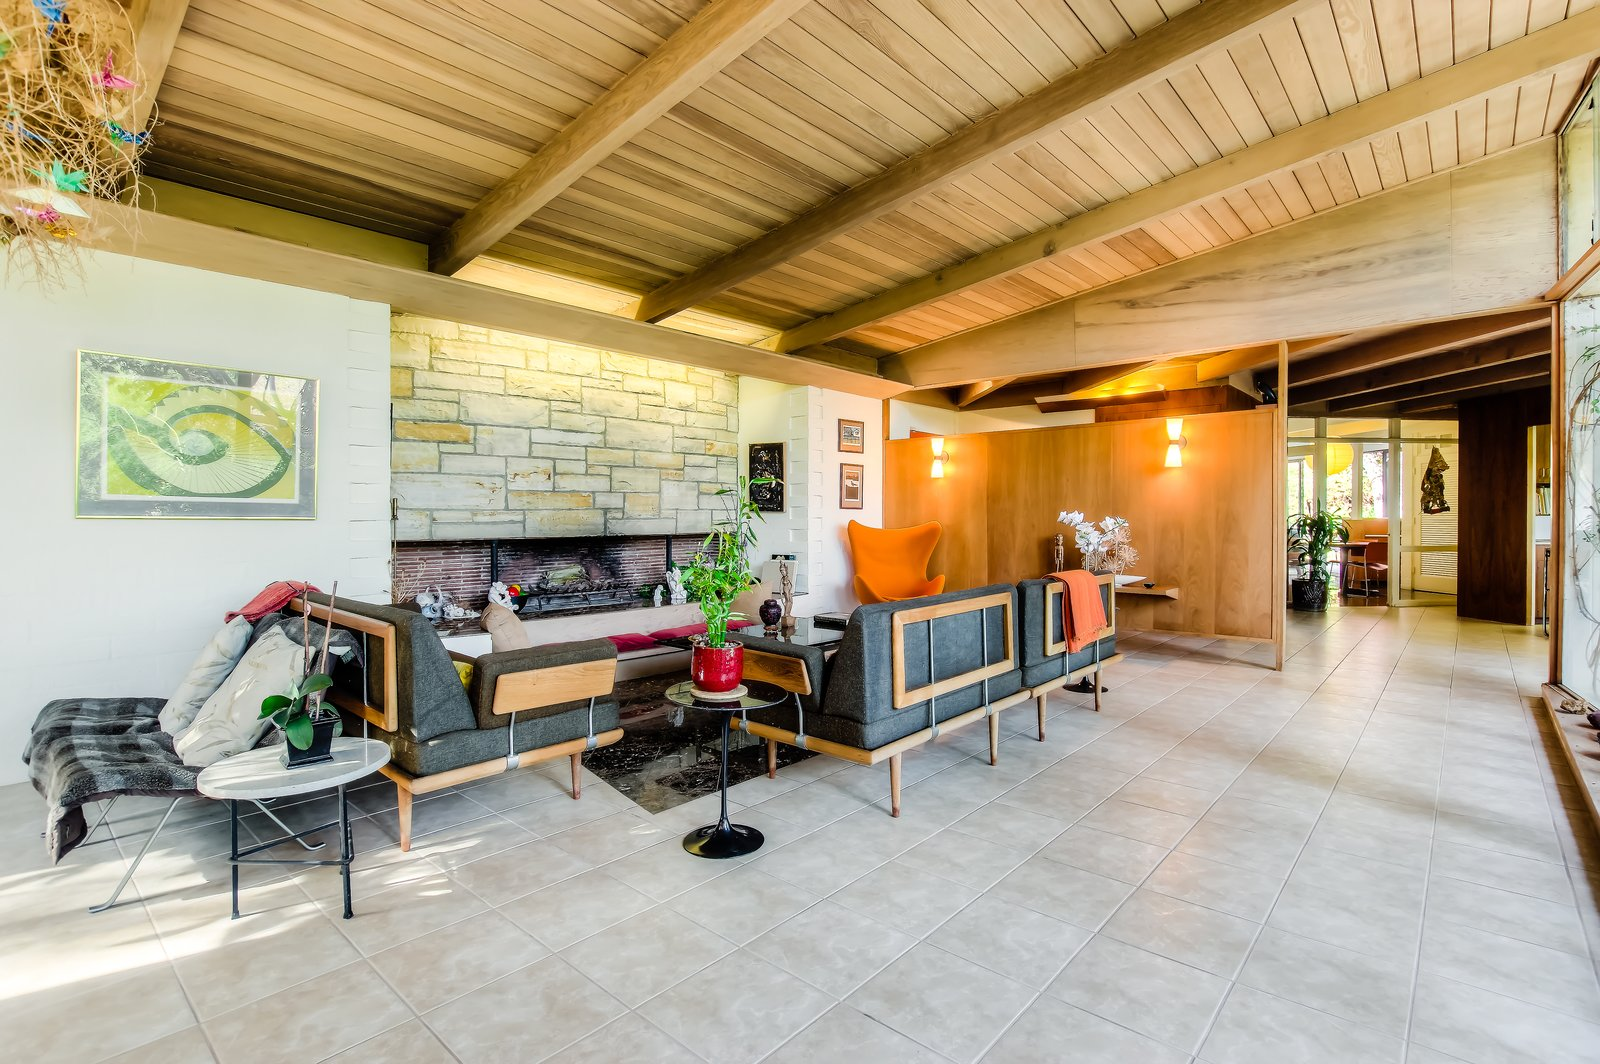 Living Room, Standard Layout Fireplace, Wall Lighting, Bench, Recliner, End Tables, Sofa, and Chair  Photo 2 of 10 in An Exceptional Midcentury by Case Study Architect Pierre Koenig Hits the Market